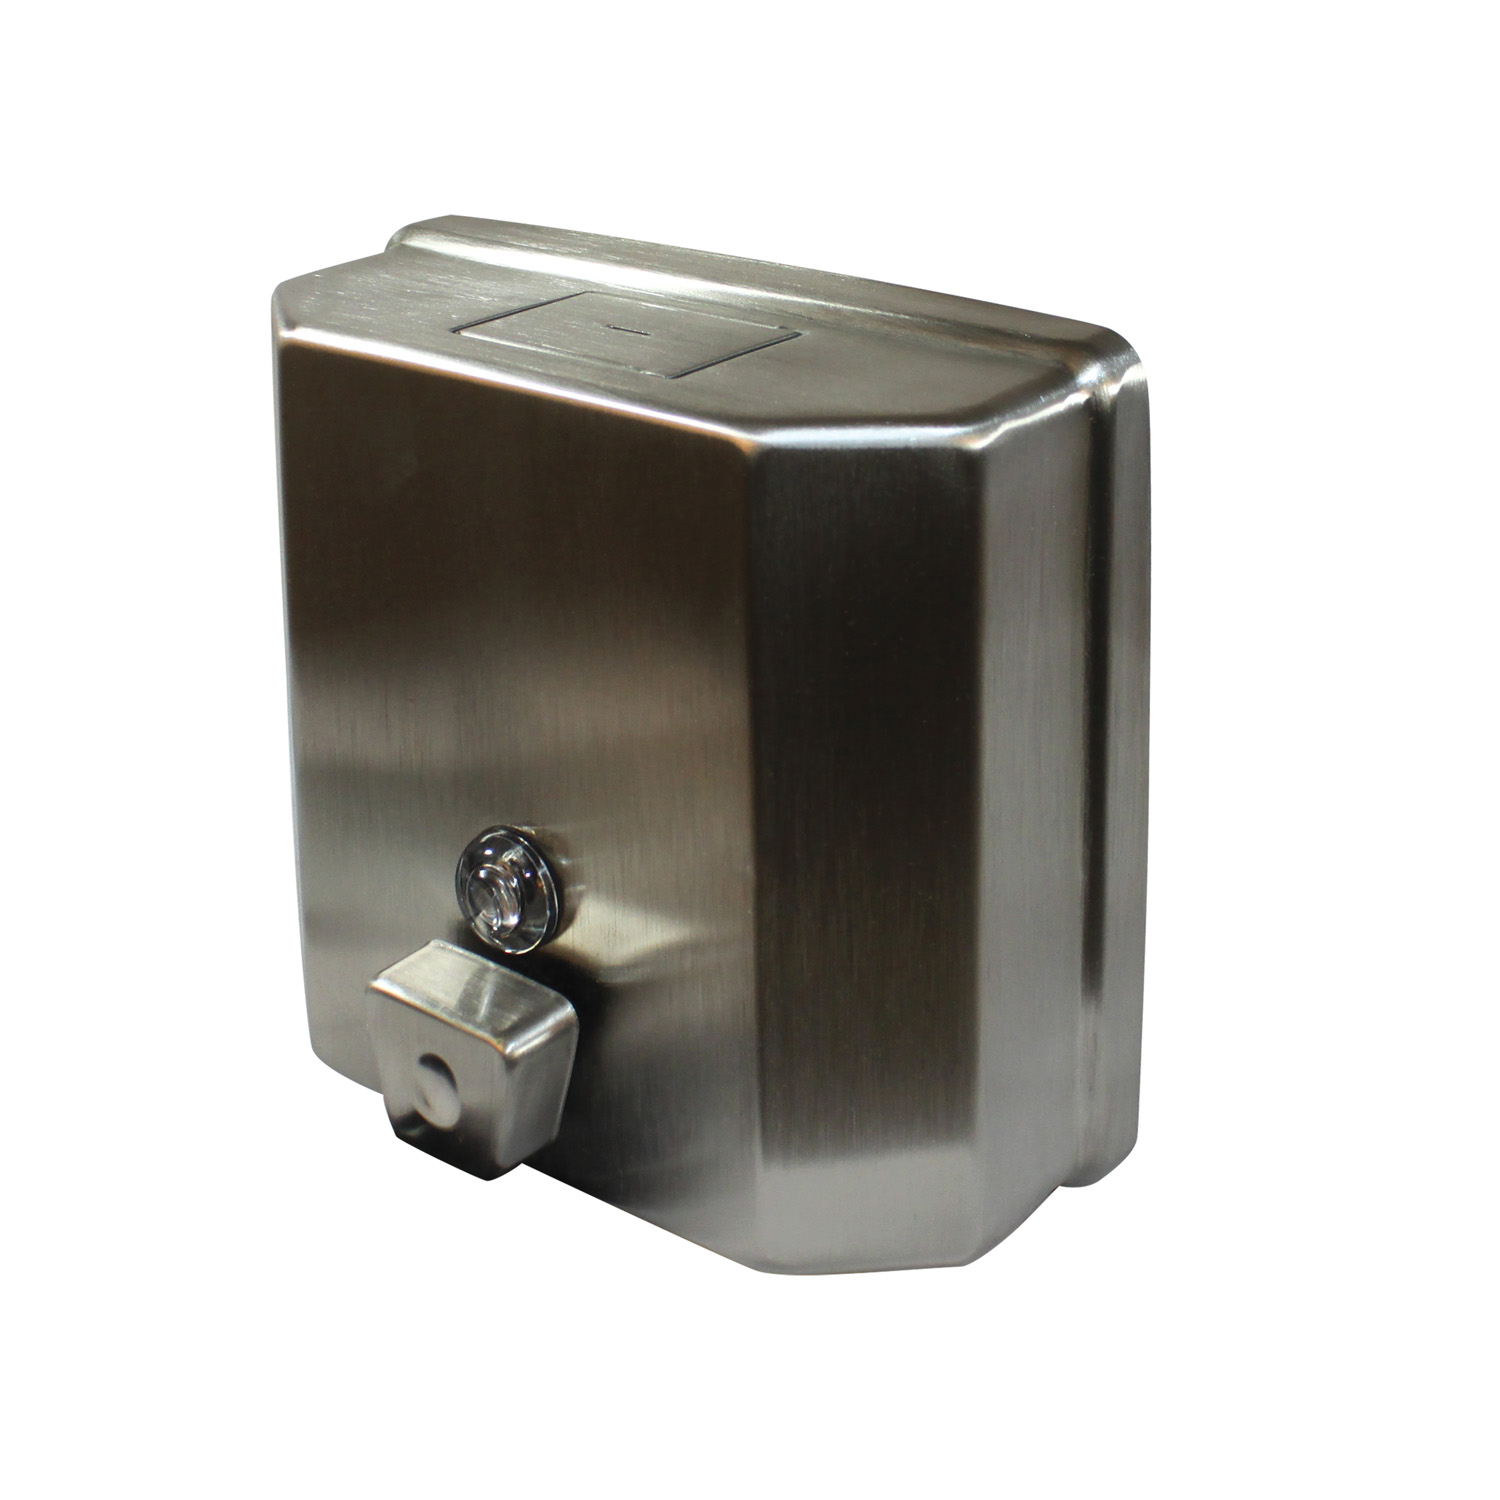 Impact Products 4047 hand soap / sanitizer dispenser